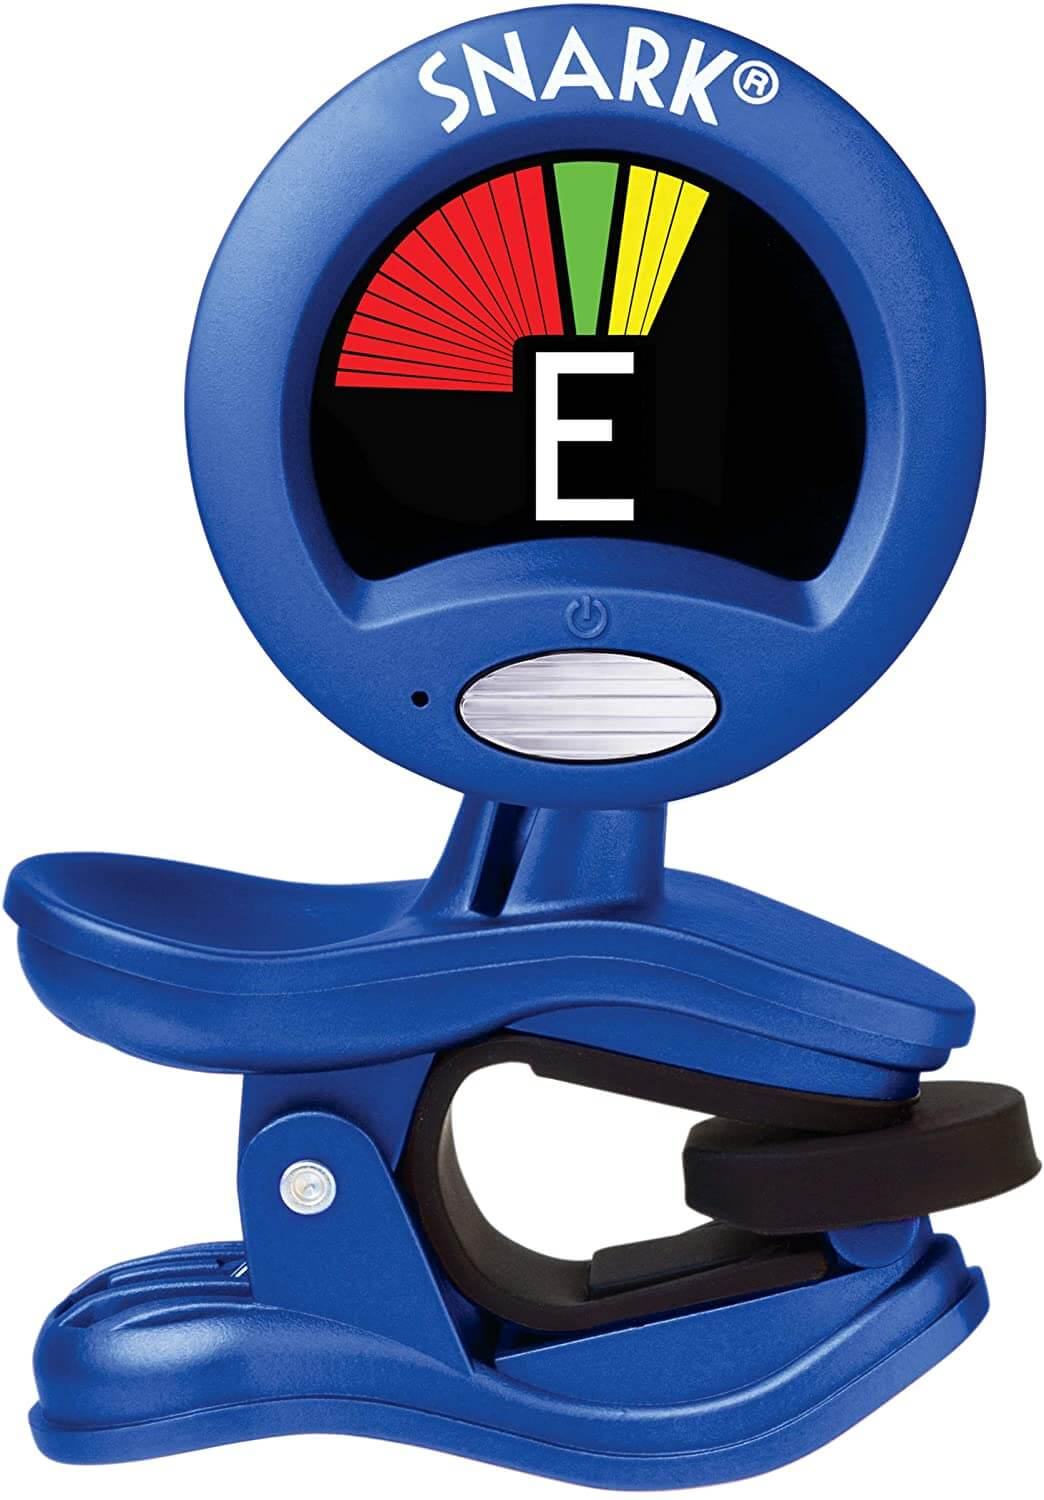 shark clip on tuner for guitar students